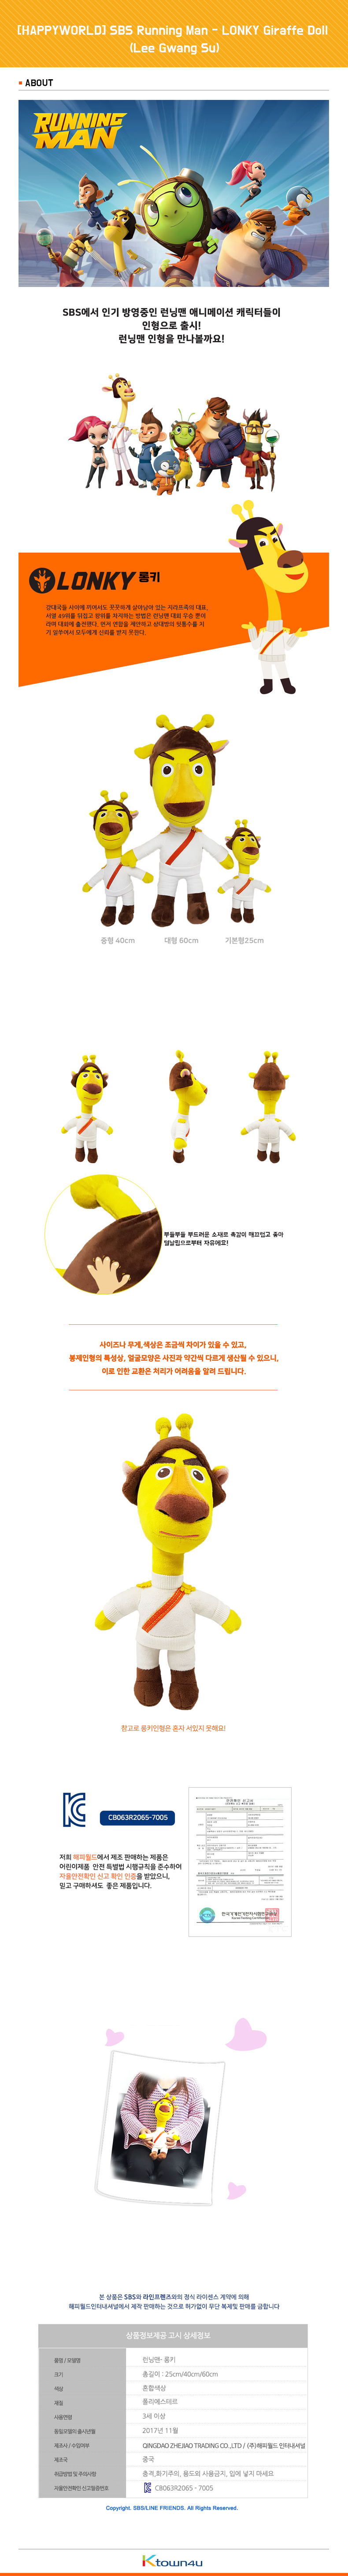 [HAPPYWORLD] SBS Running Man - LONKY Giraffe Doll (李光洙)